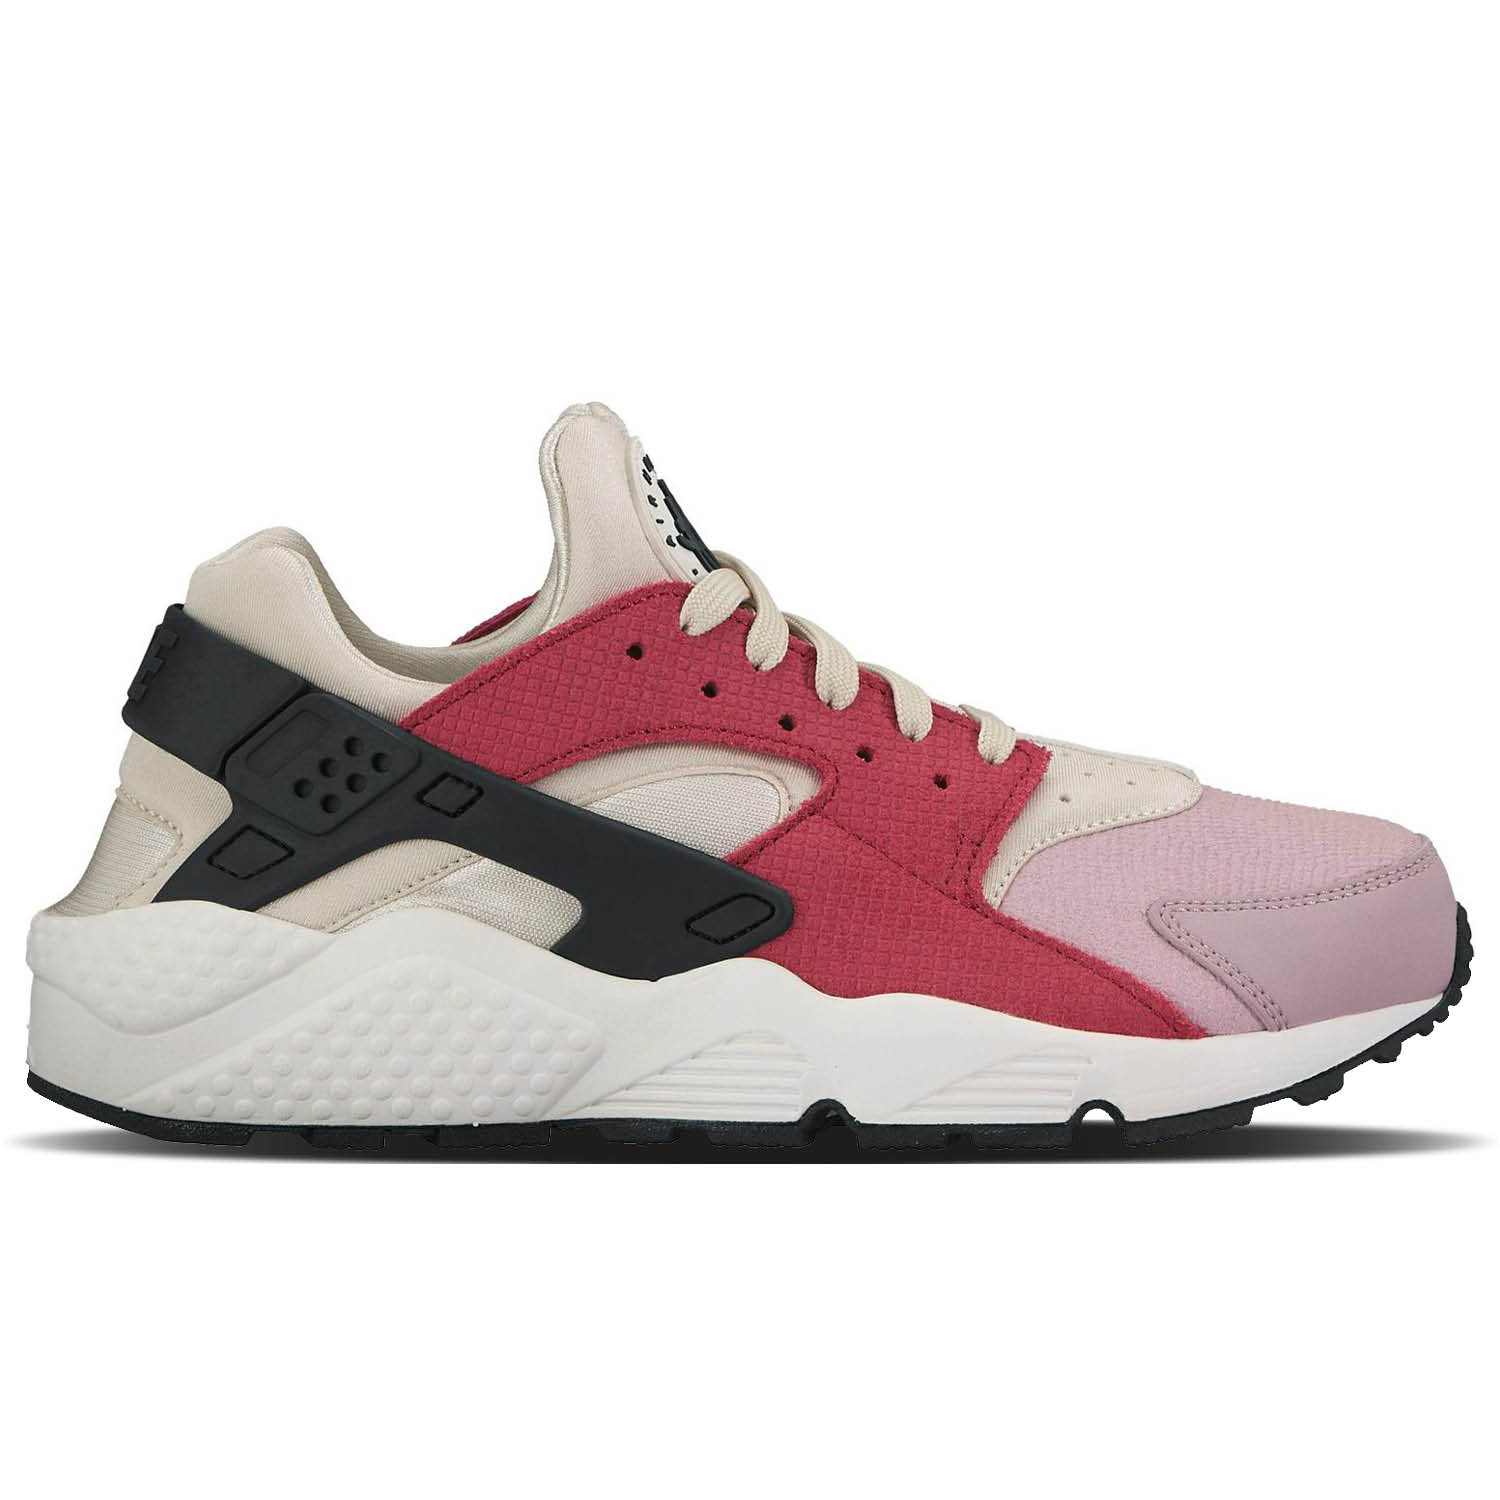 Nike Air Huarache Run Premium Light Bone 683818 006